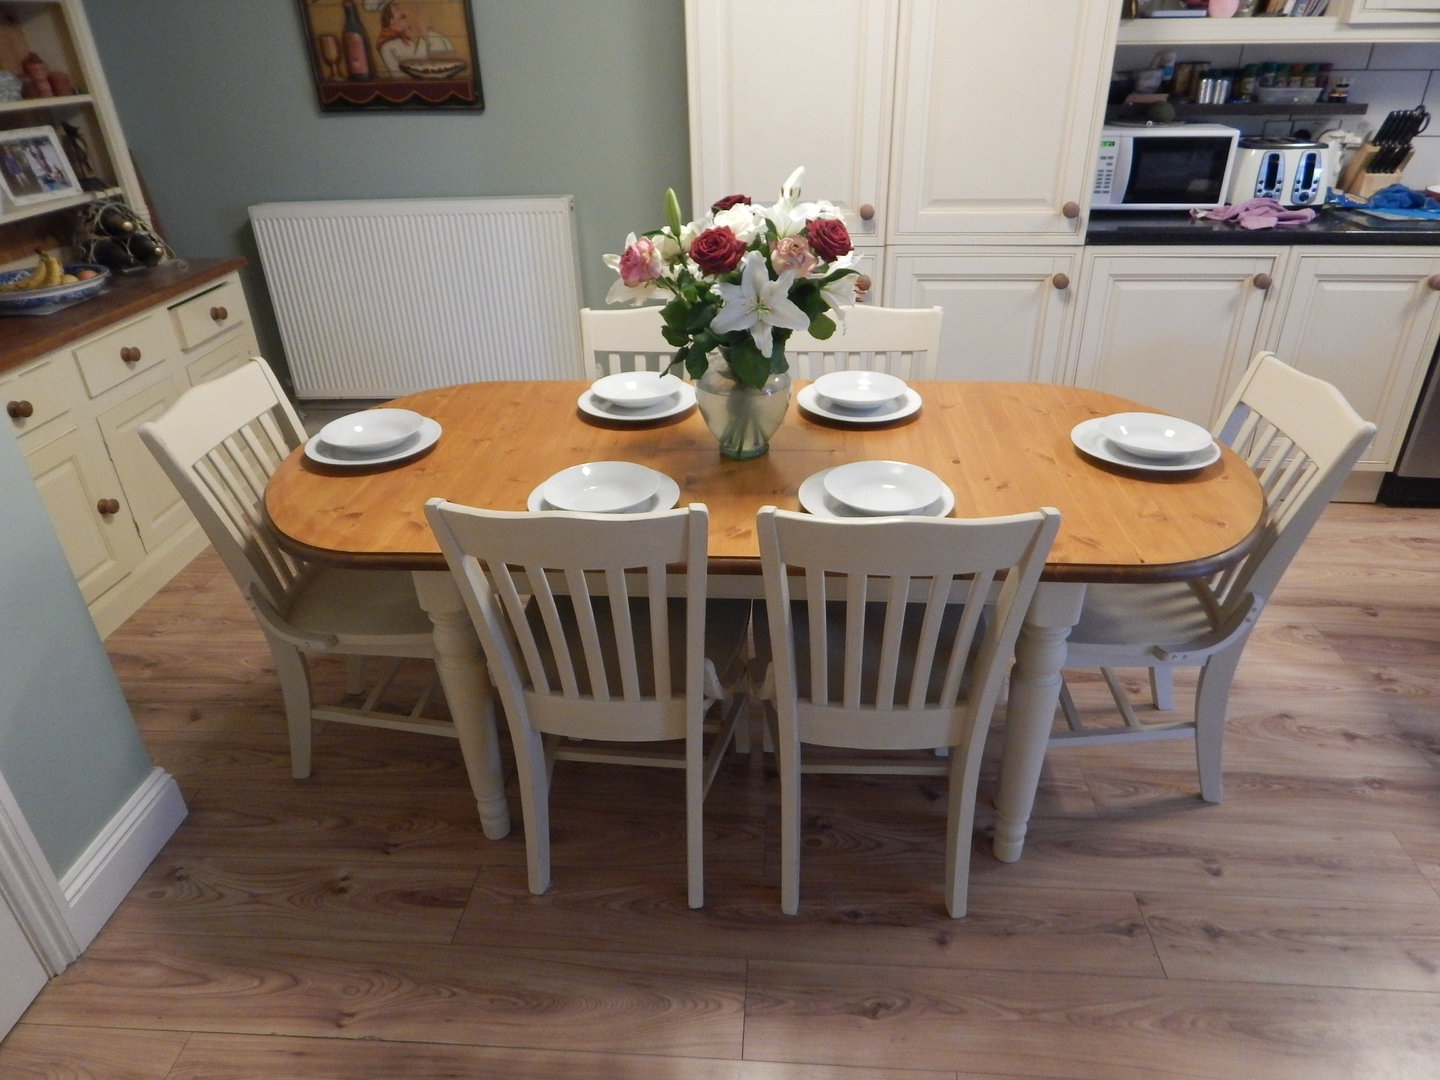 Extendable Dining Tables With 6 Chairs within Most Recent Shabby Chic , Ducal Pine Extending Dining Table & 6 Chairs